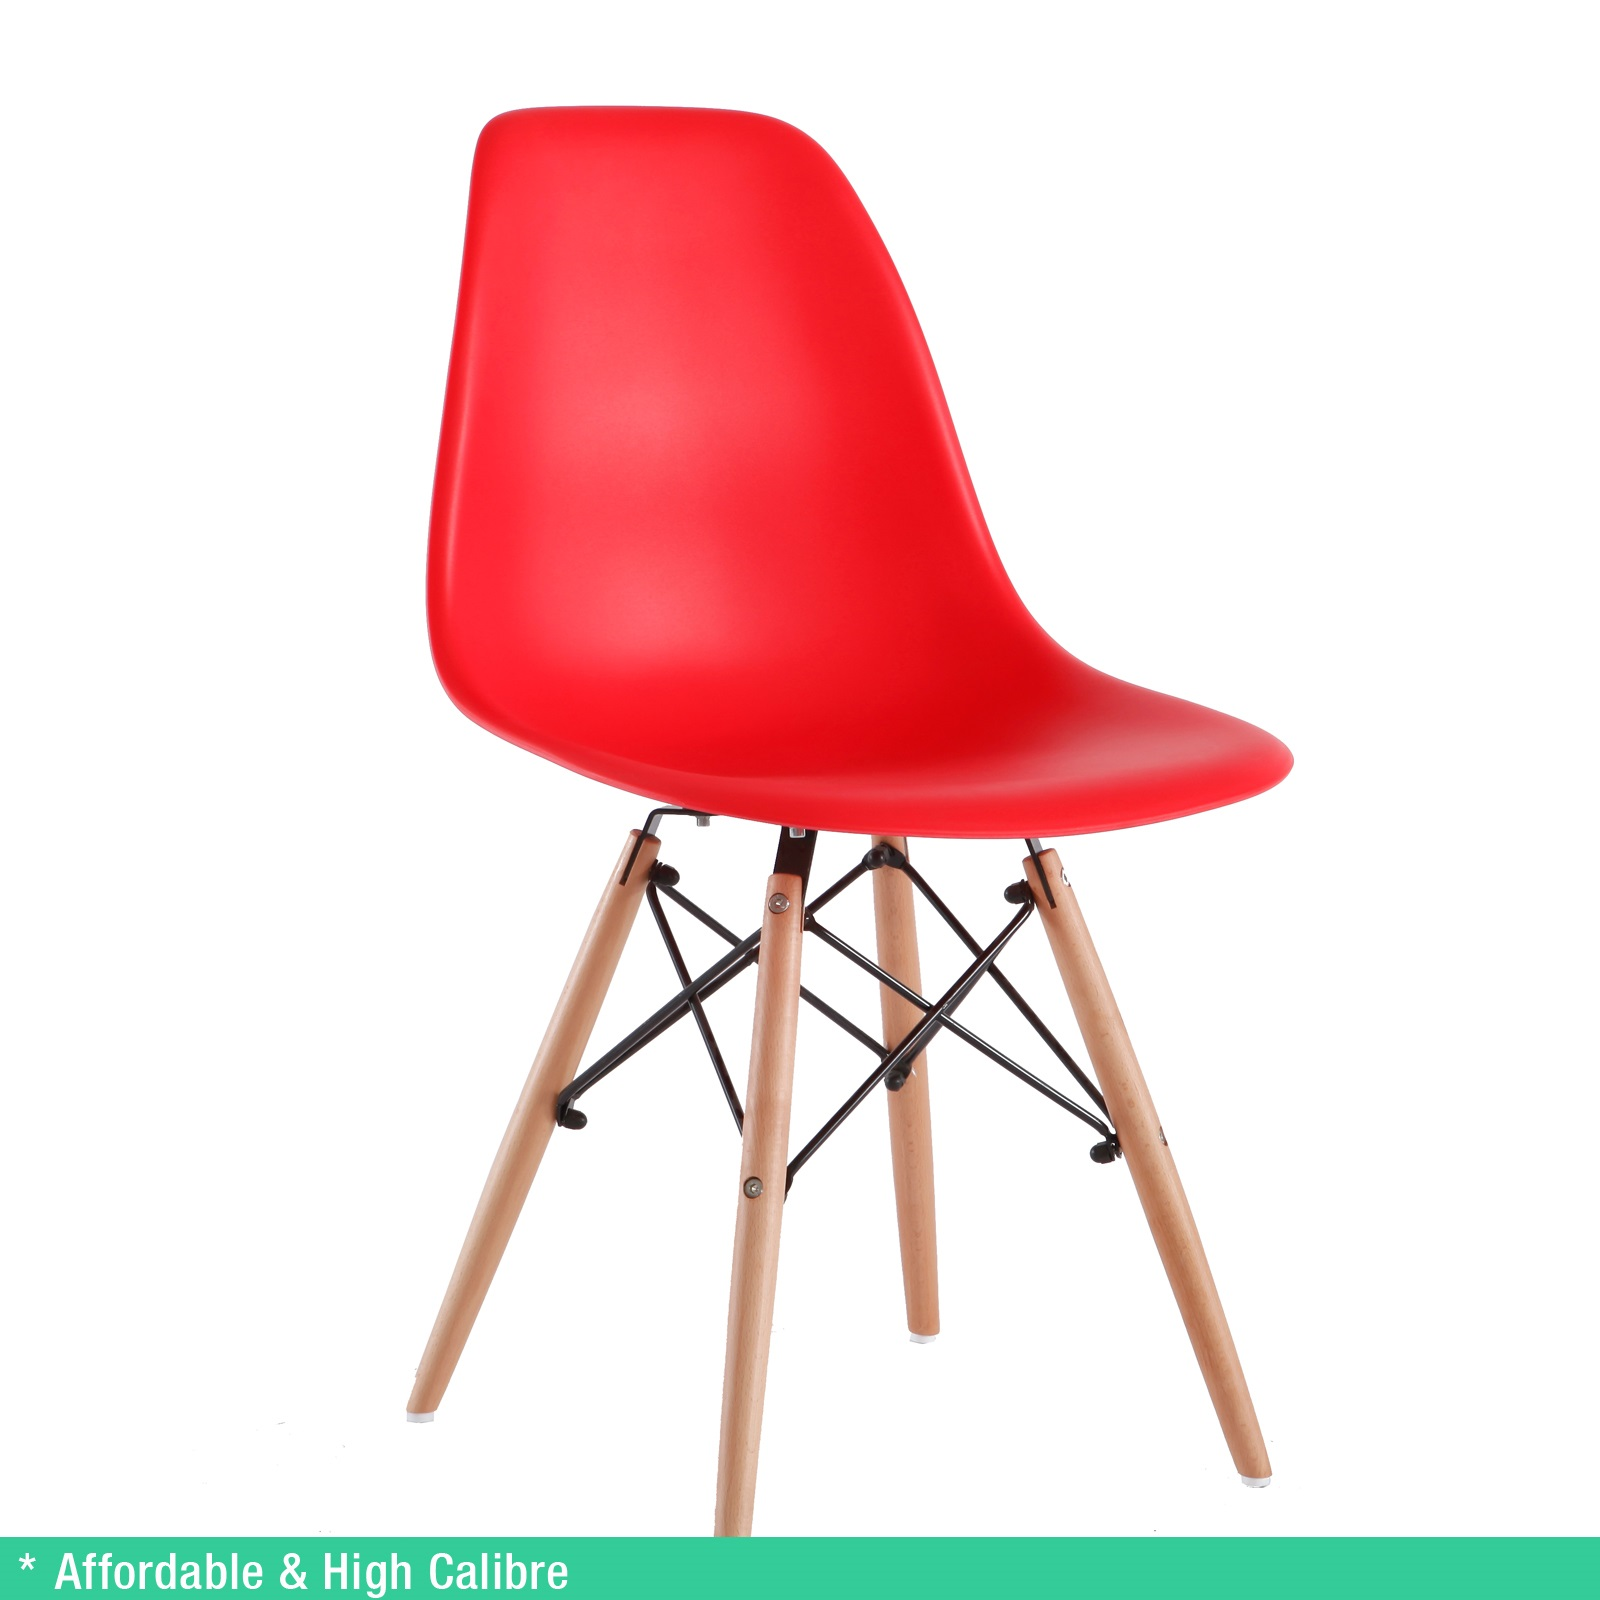 8 x Retro Replica Eames Chick DSW Dining Chairs Office  : Eames Chick Red 01 from www.ebay.com.au size 1600 x 1600 jpeg 418kB